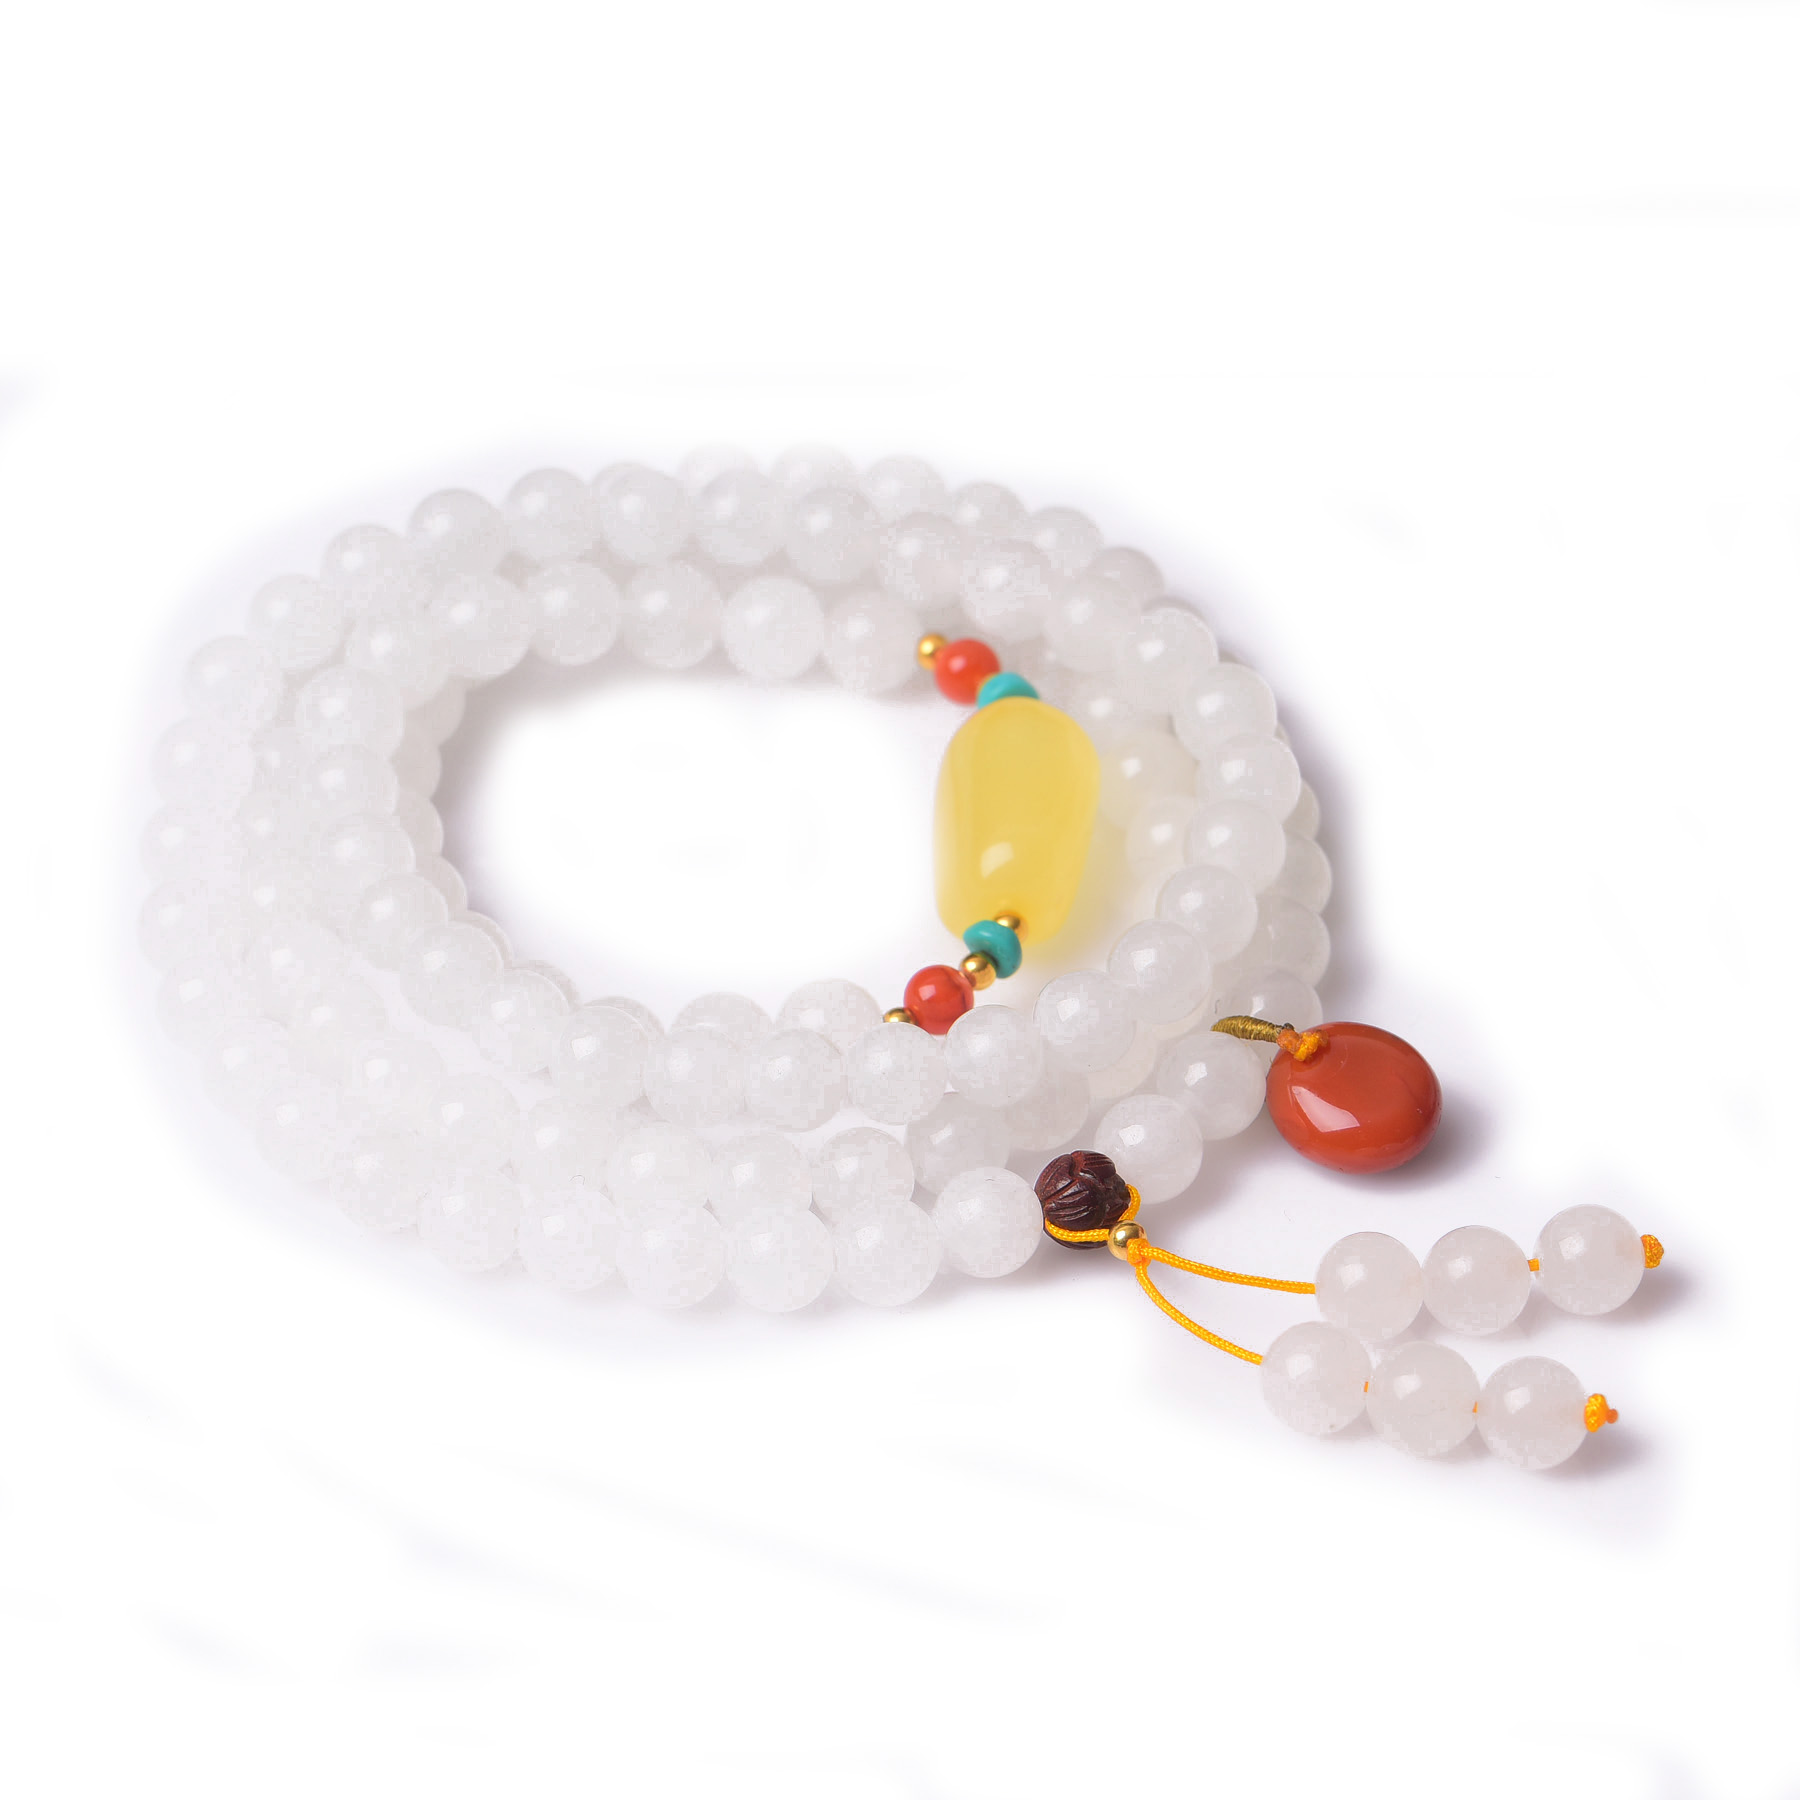 Handmade Authentic Hetian Crystal Beads Bracelets 6.8mm handmade authentic hetian crystal budda bracelets